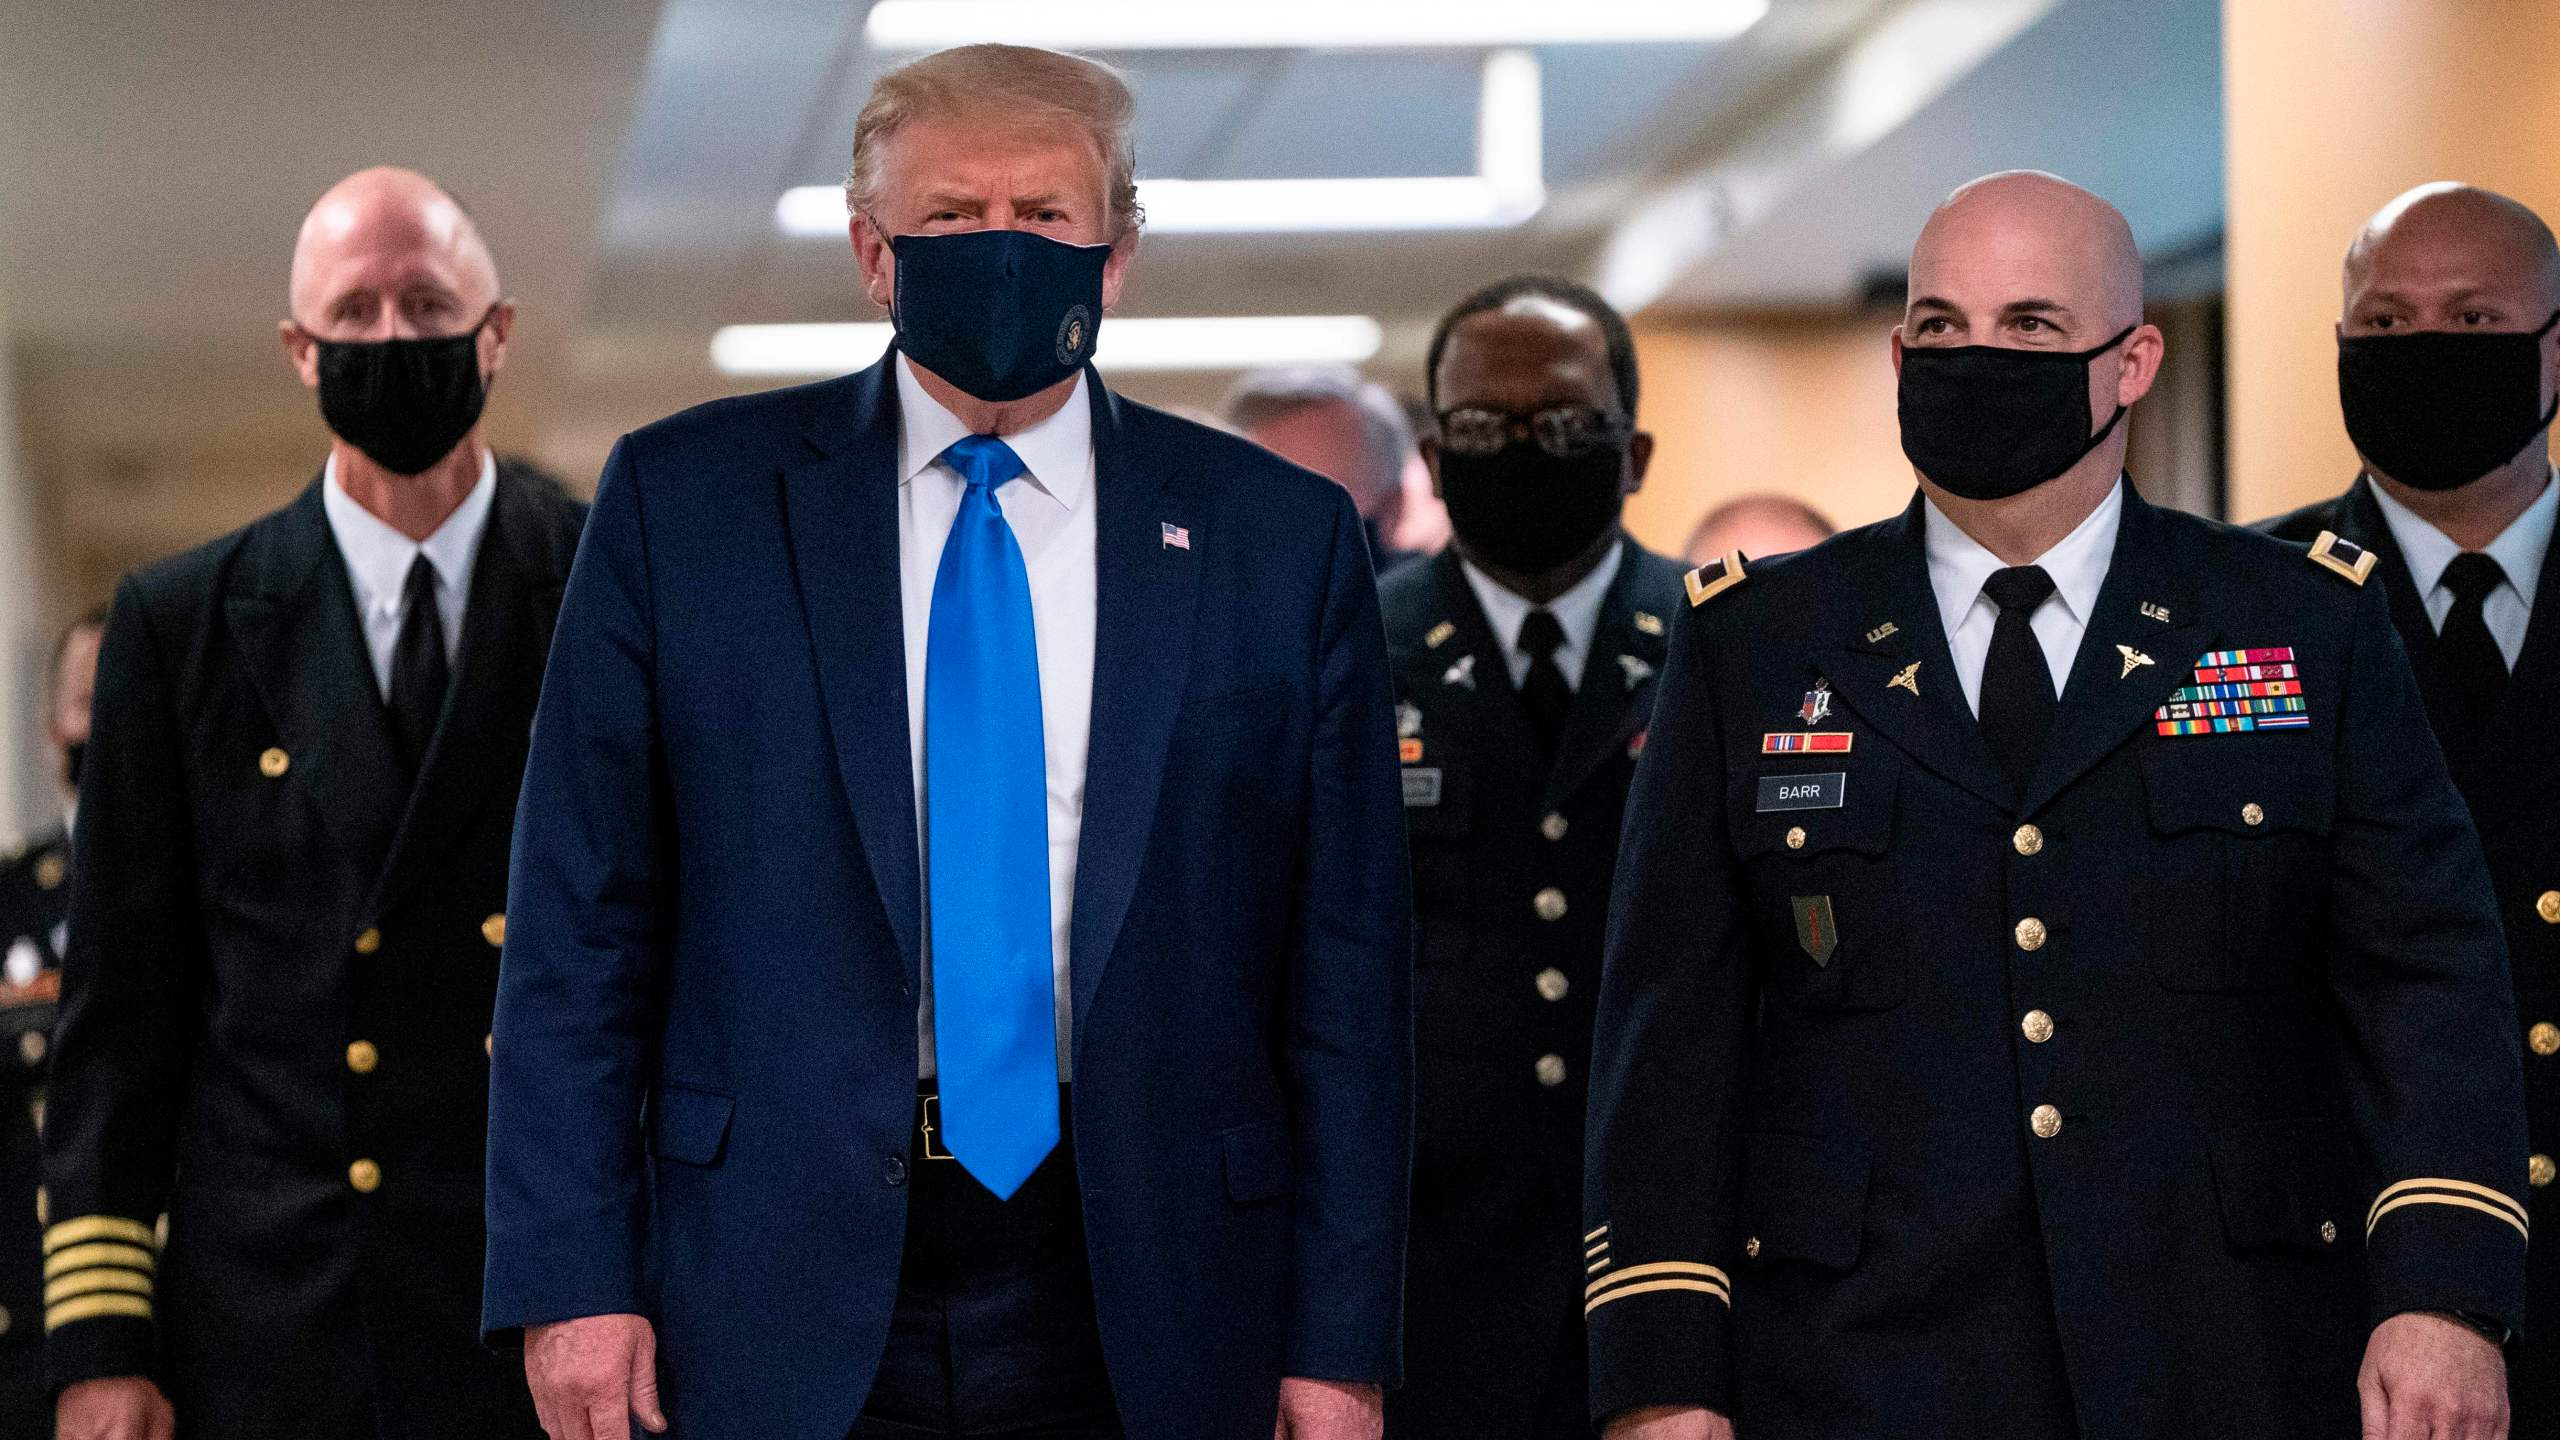 U.S. President Donald Trump wears a mask as he visits Walter Reed National Military Medical Center in Bethesda, Maryland' on July 11, 2020. (ALEX EDELMAN / AFP via Getty Images)